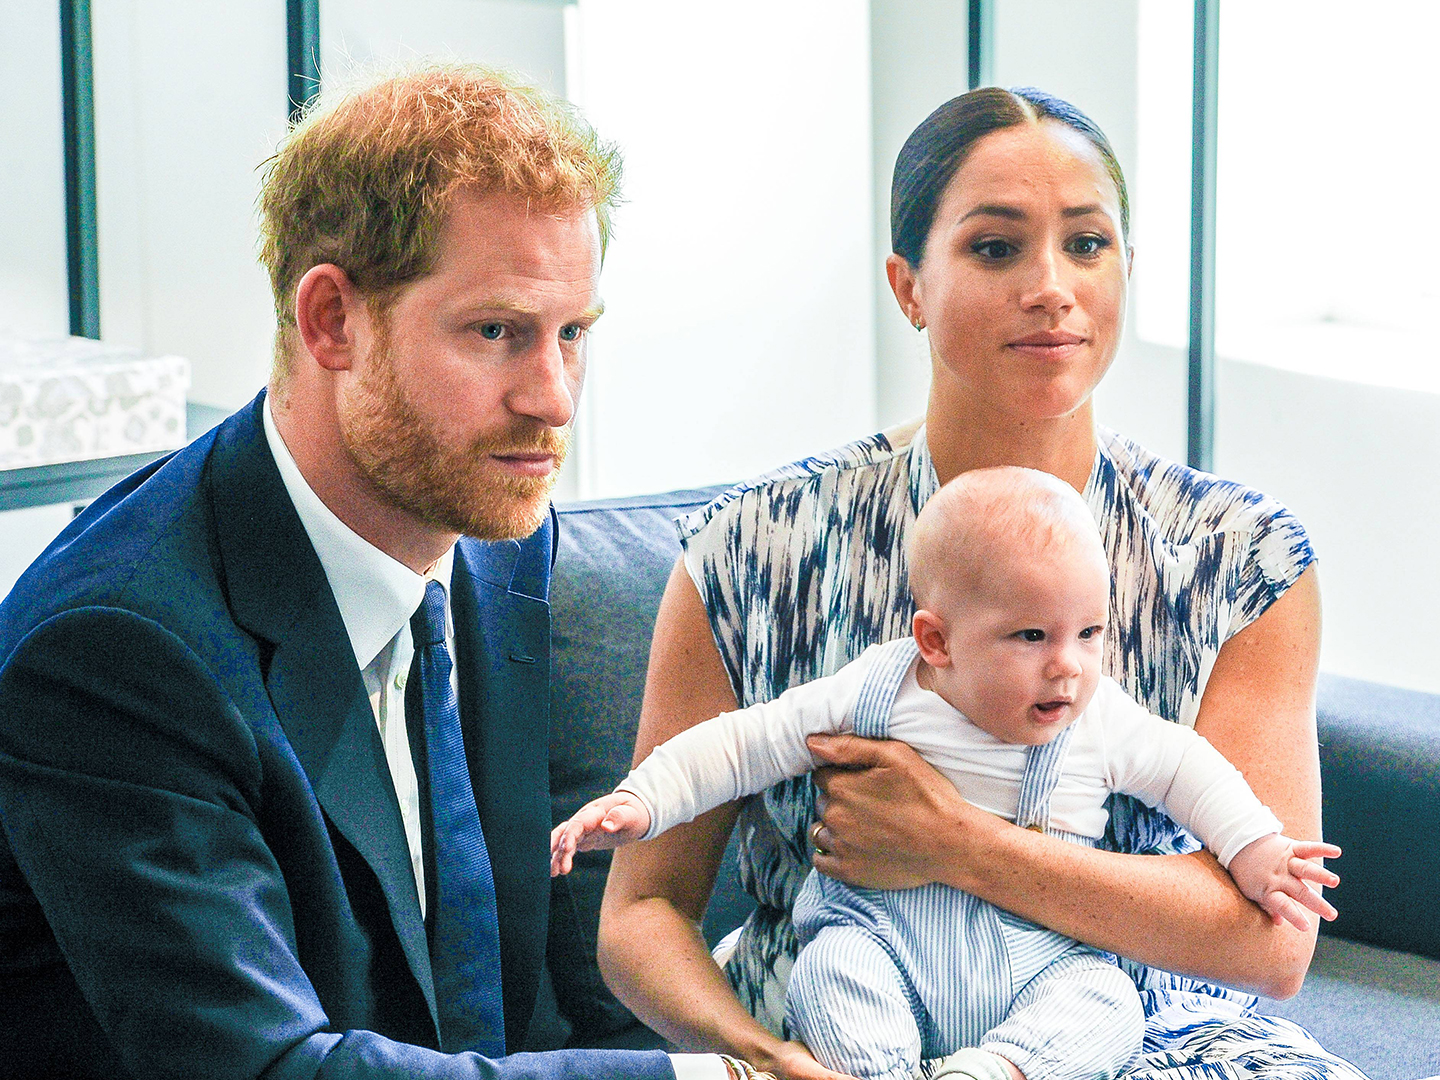 prince harry got parenting advice from black dad activist sheknows prince harry got parenting advice from